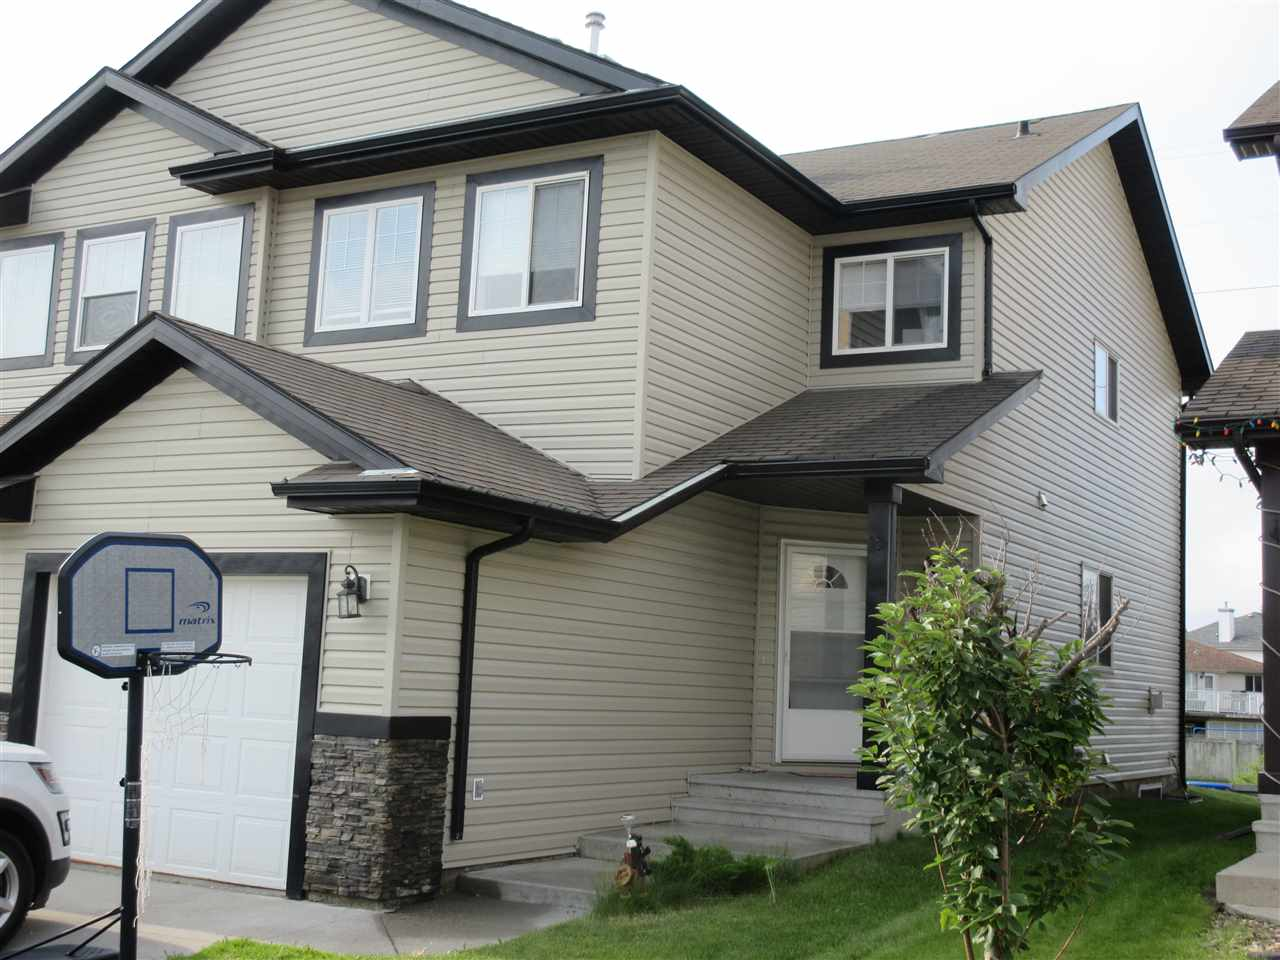 MLS® listing #E4166213 for sale located at 5967 164 Ave